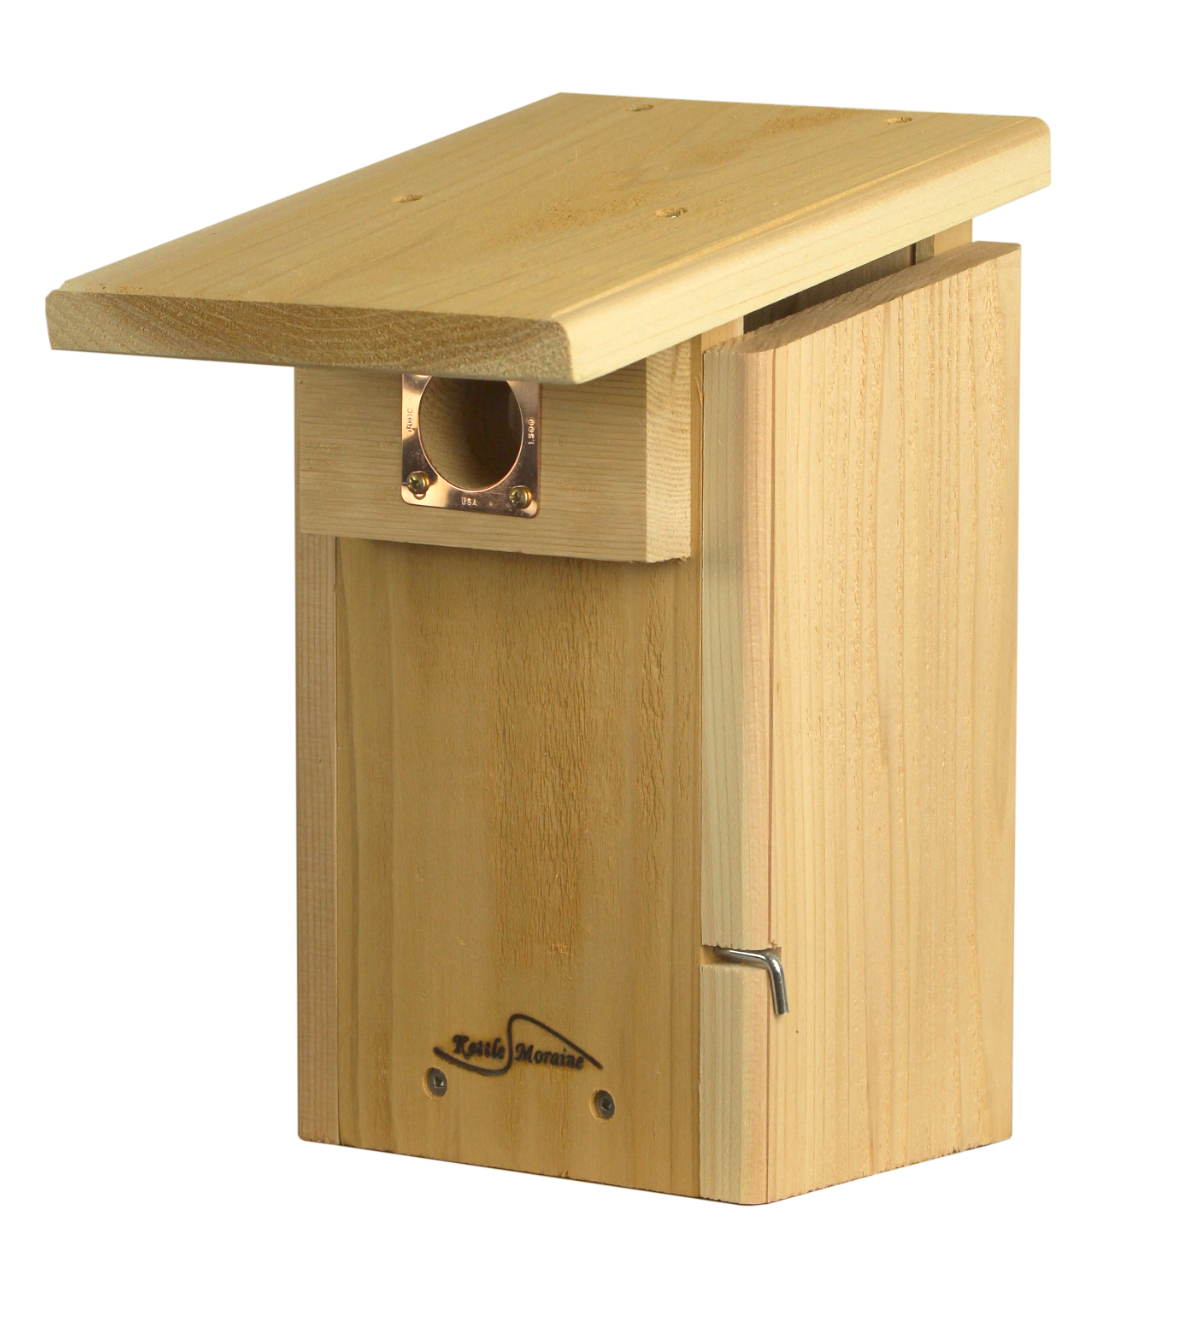 cedar bluebird nest box with viewing window